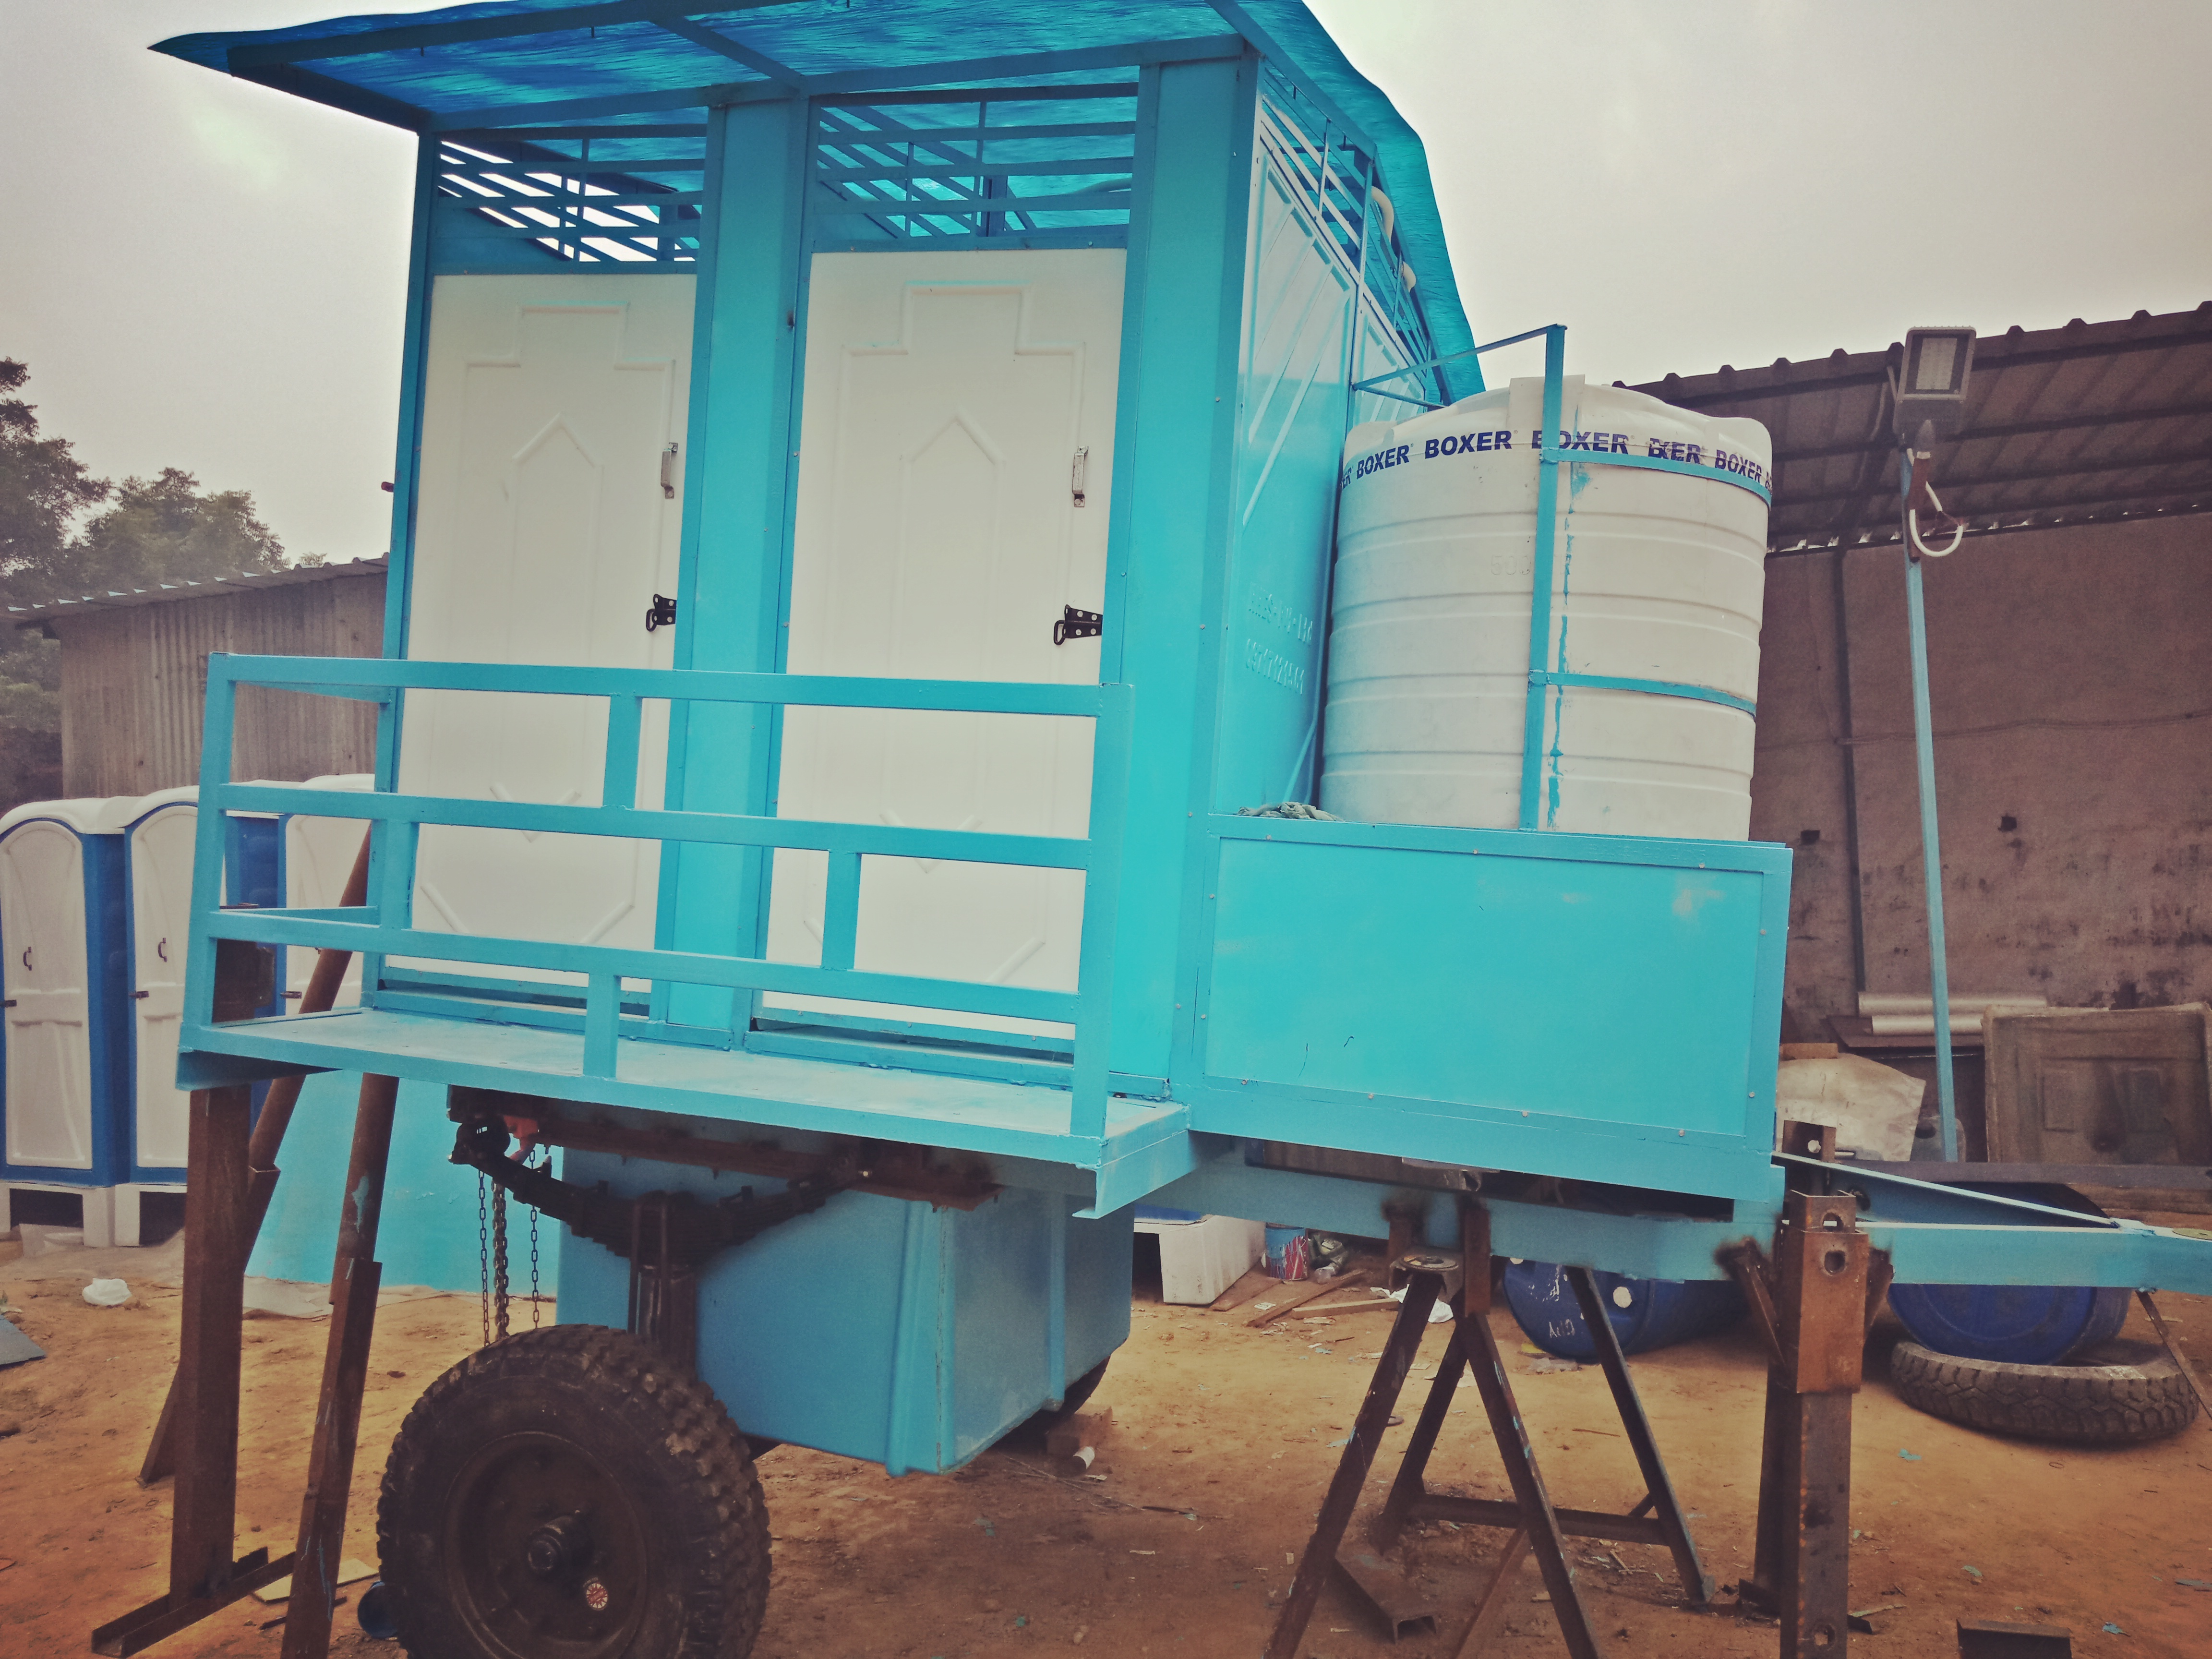 4 SEATER MOBILE TOILET TROLLEY